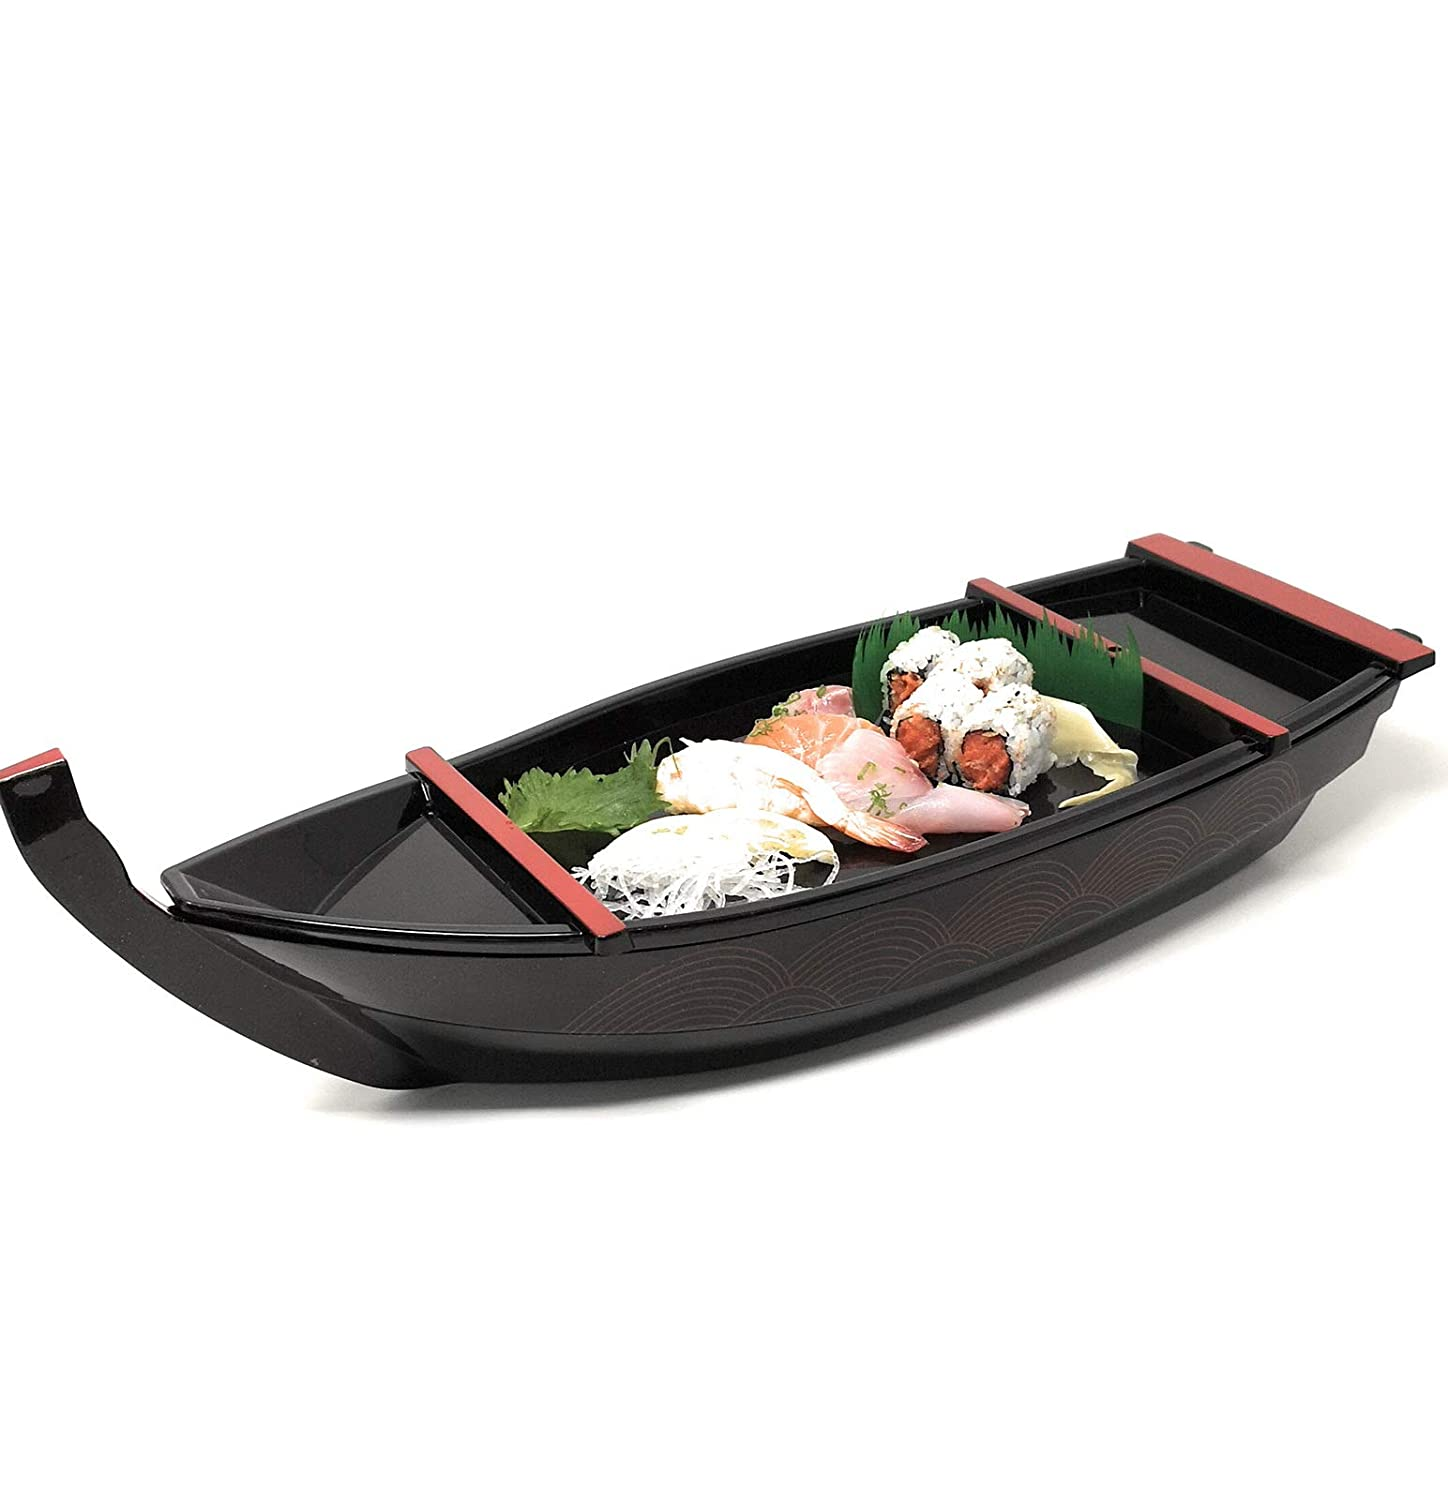 ASIAN HOME Japanese Sashimi Sushi Boat Plate Detachable Serving Tray For Restaurant Home Dining Decorative Dinnerware Party Hosting Display Boat 21